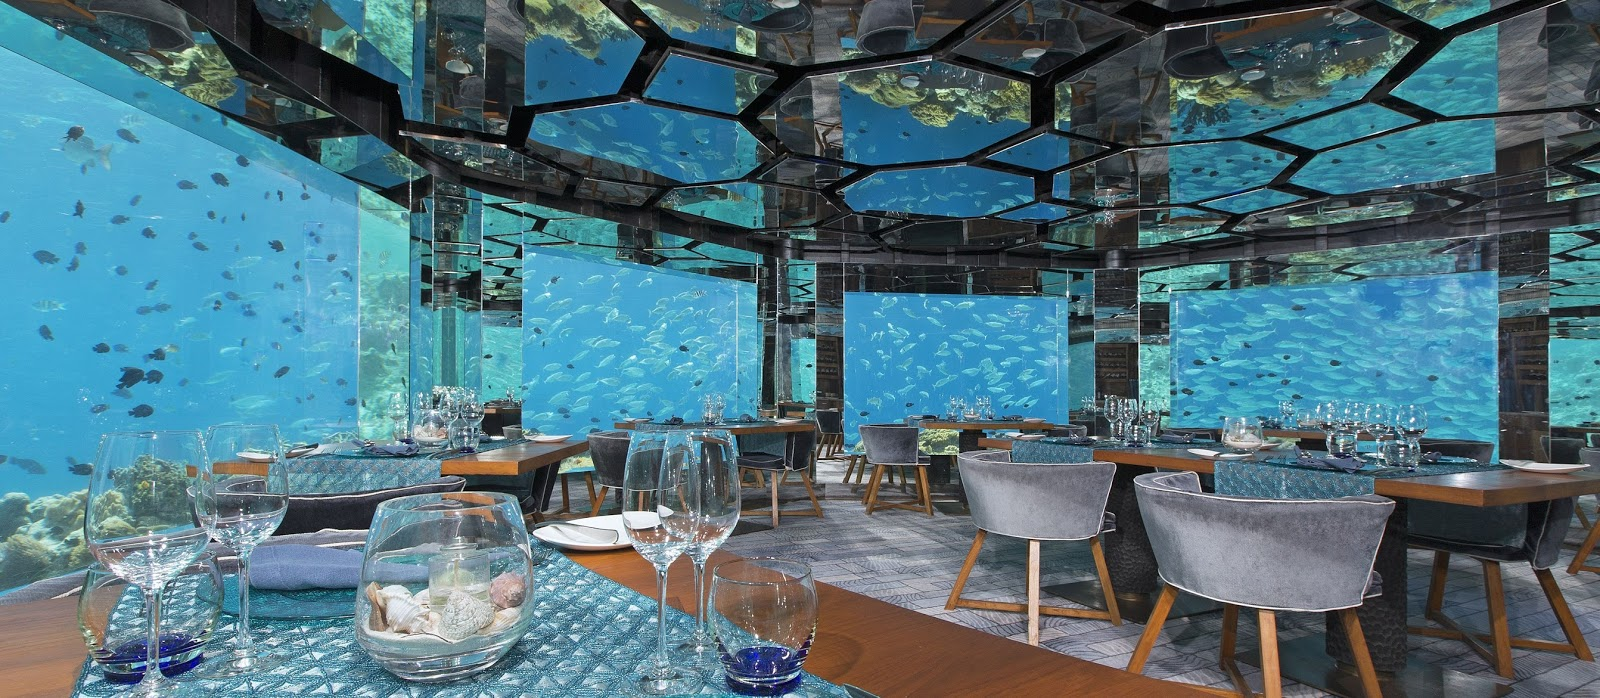 Underwater Restaurants In Maldives Lalumi Travels Vacation Honeymoon Travel Tours In